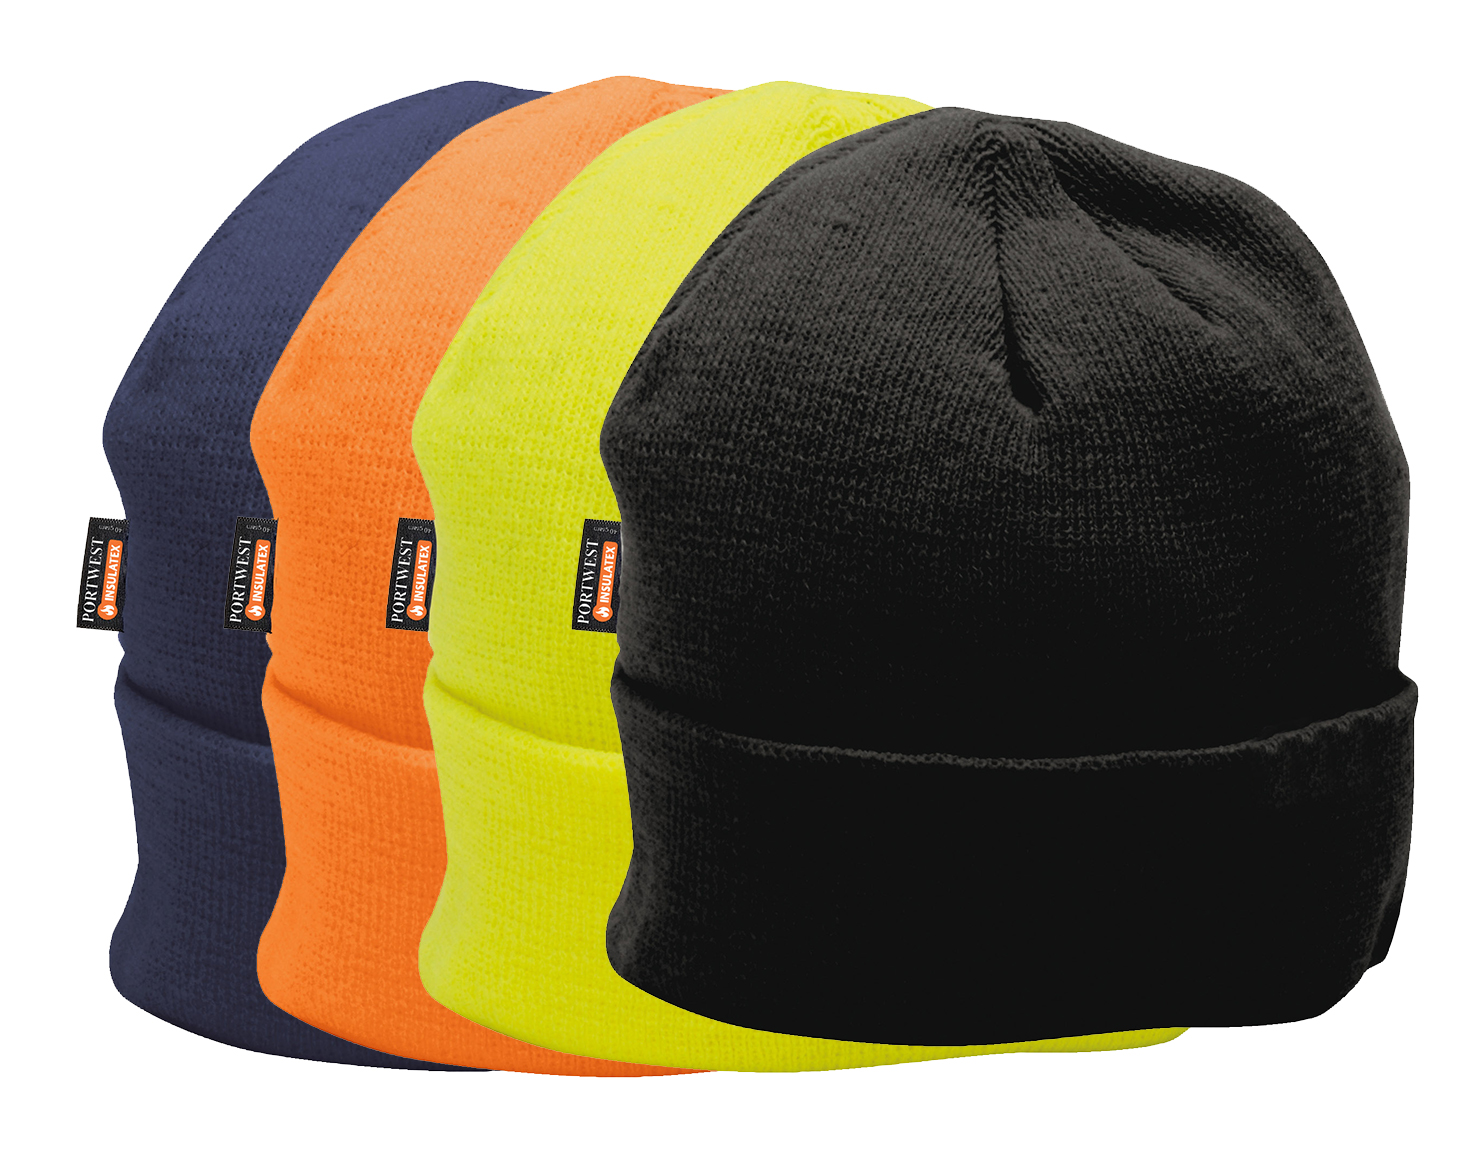 d4911bb5 Portwest b013 insulated winter beanies, available in orange, yellow, black  or navy